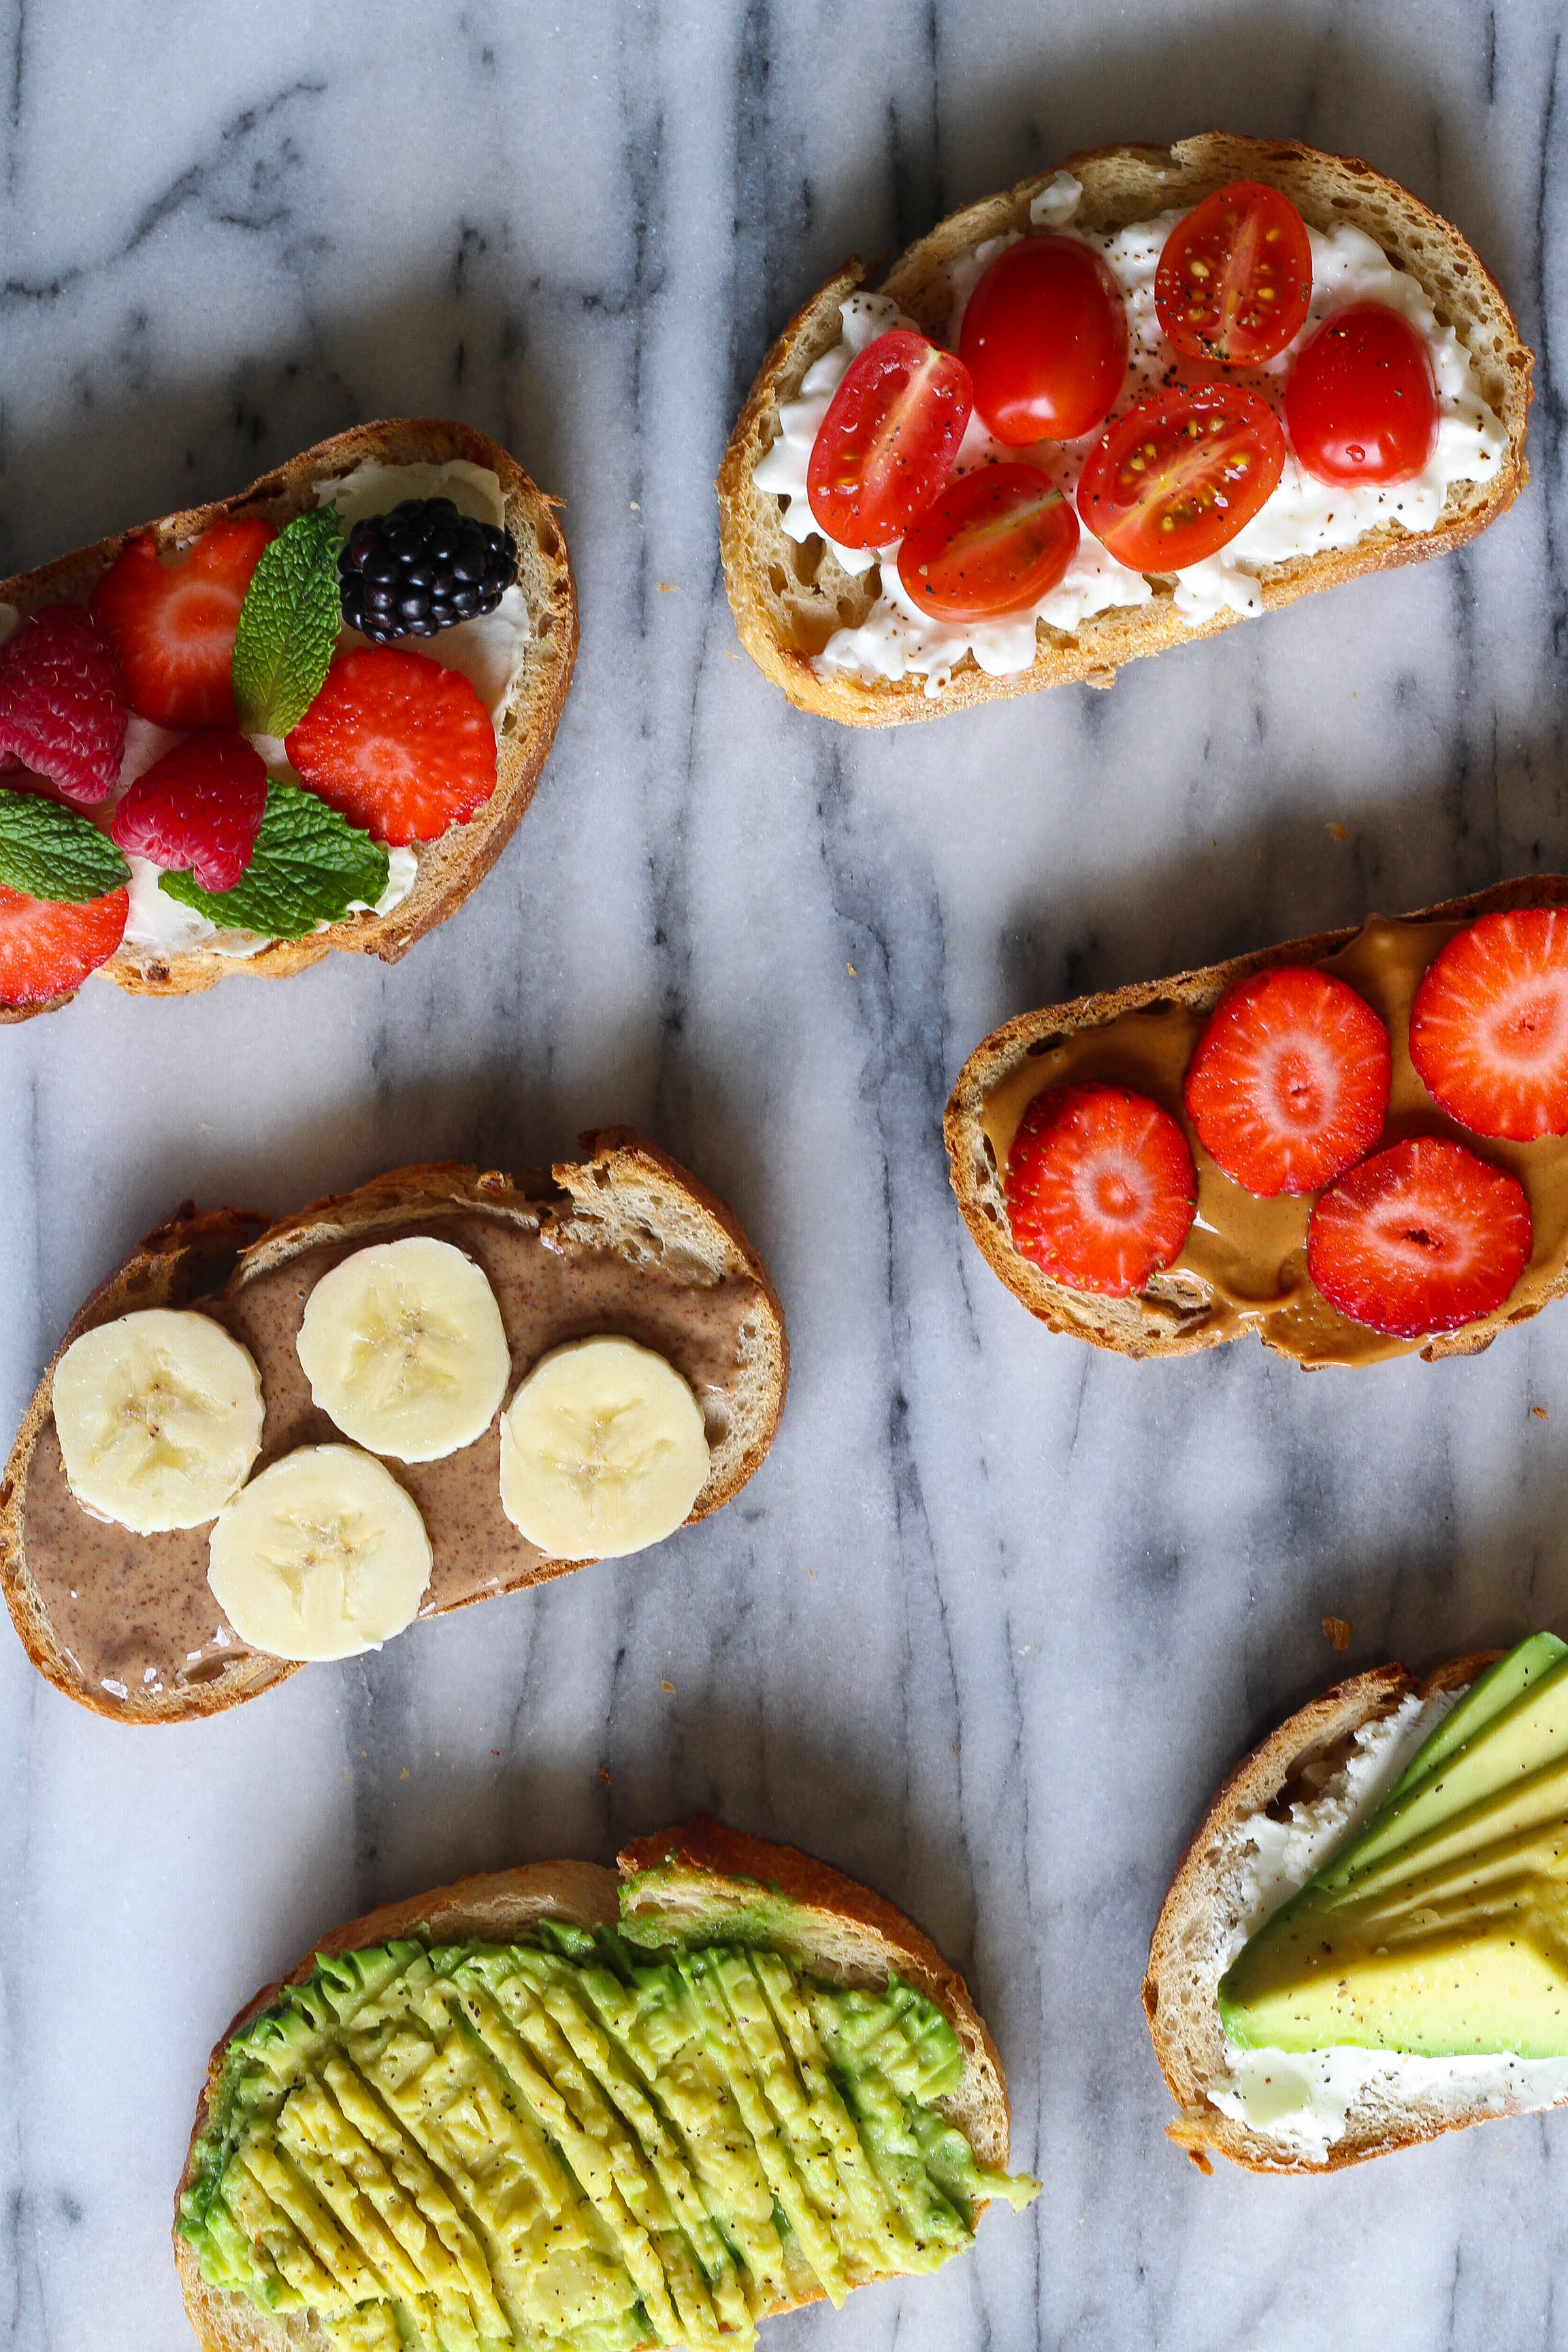 This Toast Bar is a great option to serve at your next brunch to give your guests the gift of option. Using the technique of a taco bar, this toast bar makes for a yummy brunch with various flavor combinations.